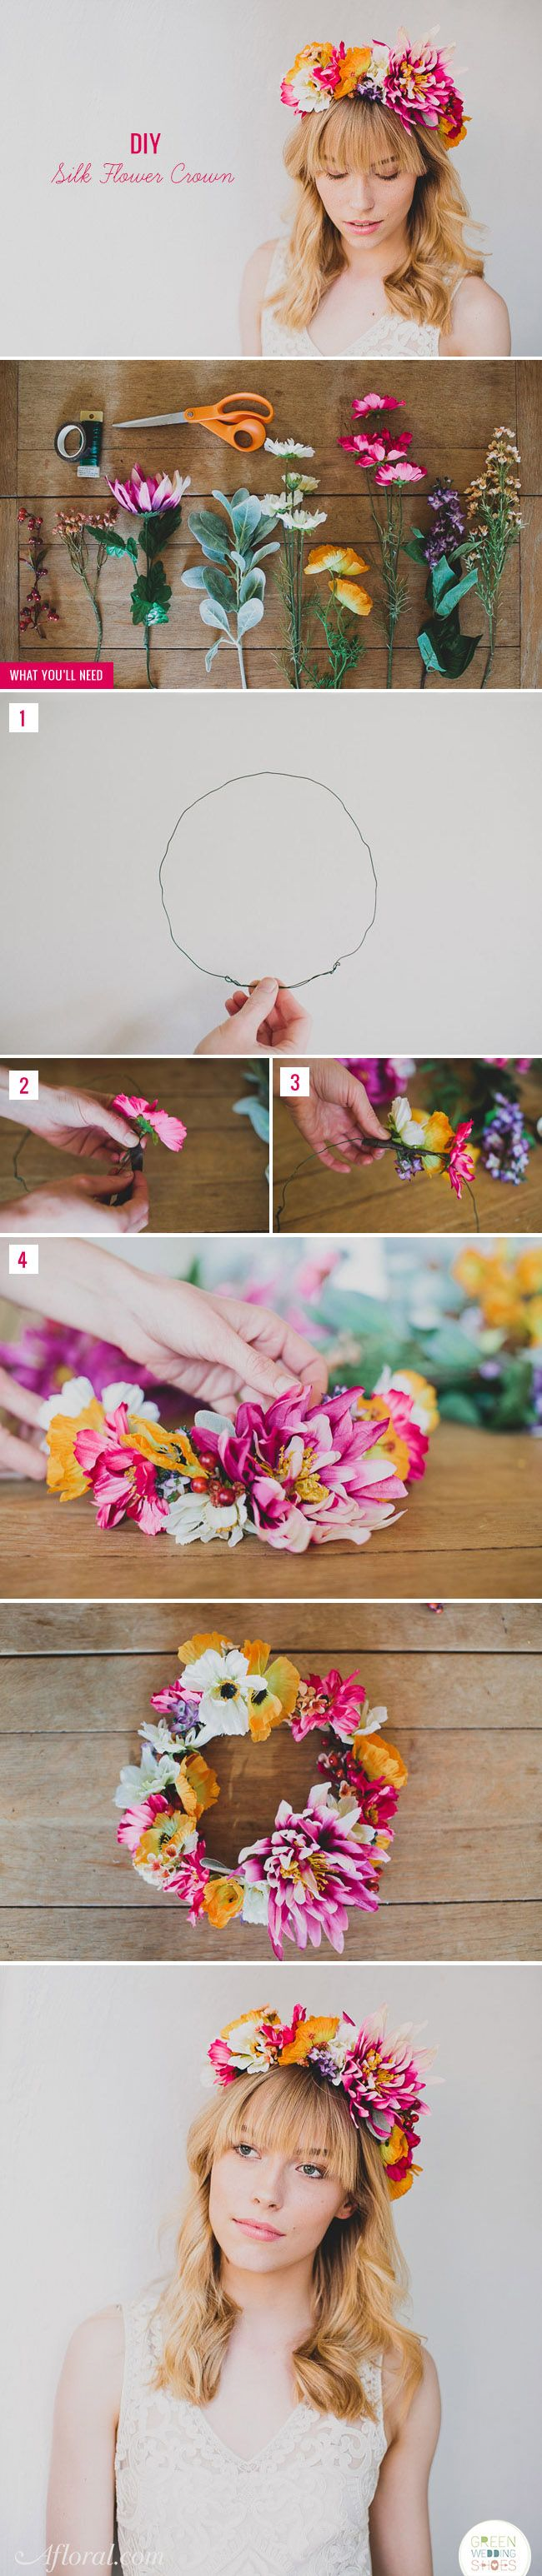 Diy Silk Flower Crown Centerpieces Pinterest Diy Flower Crown